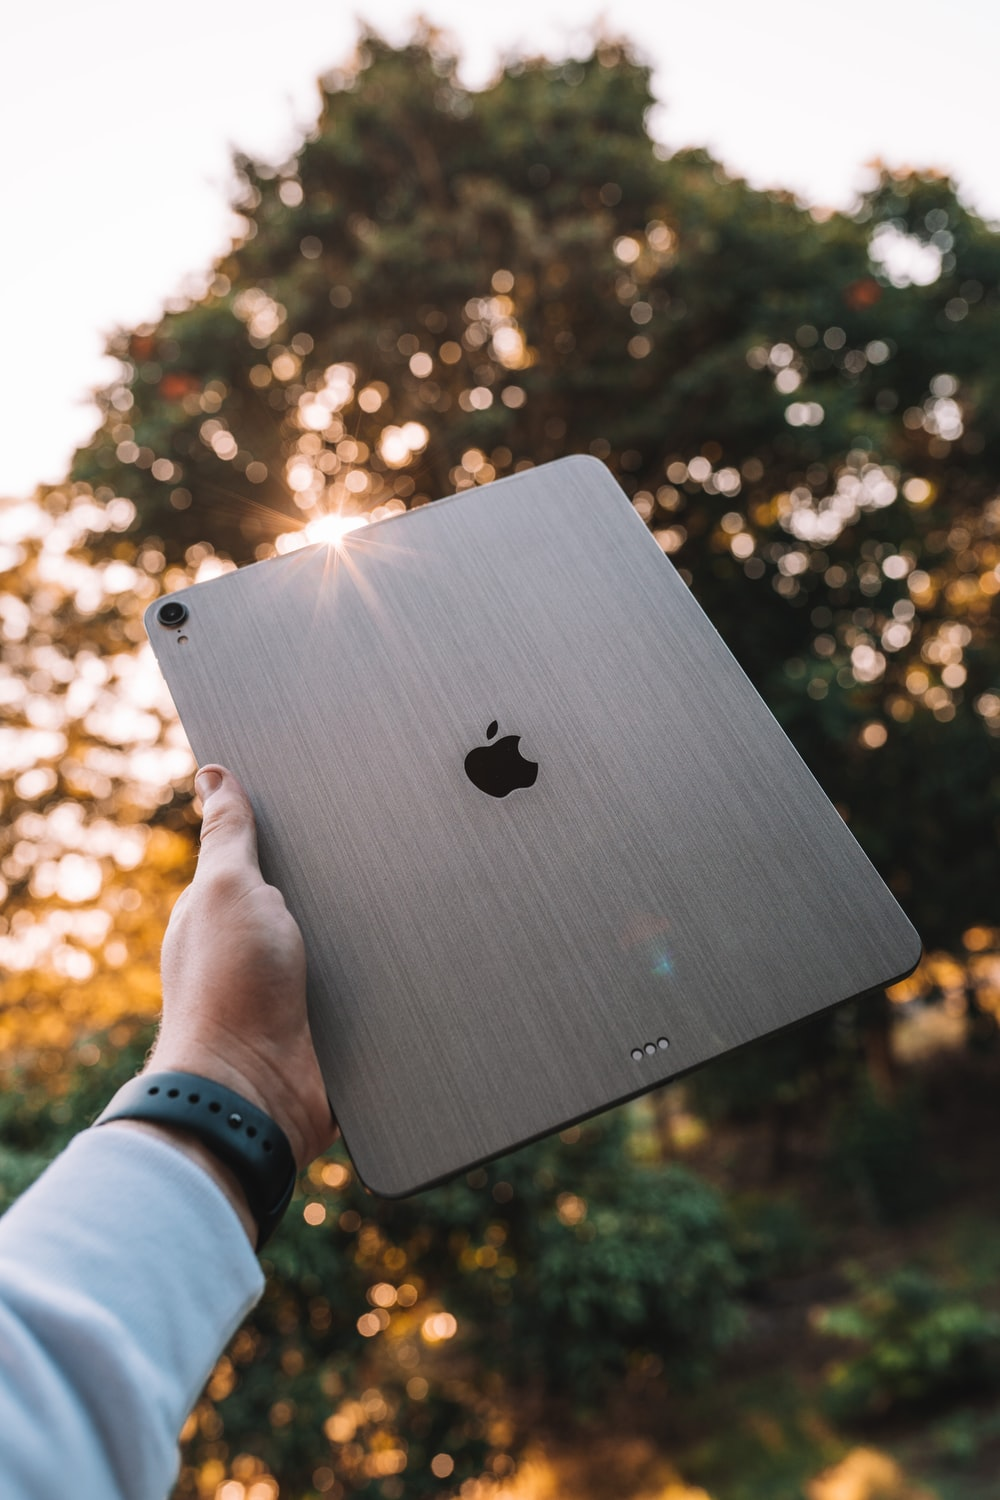 person holding silver apple macbook